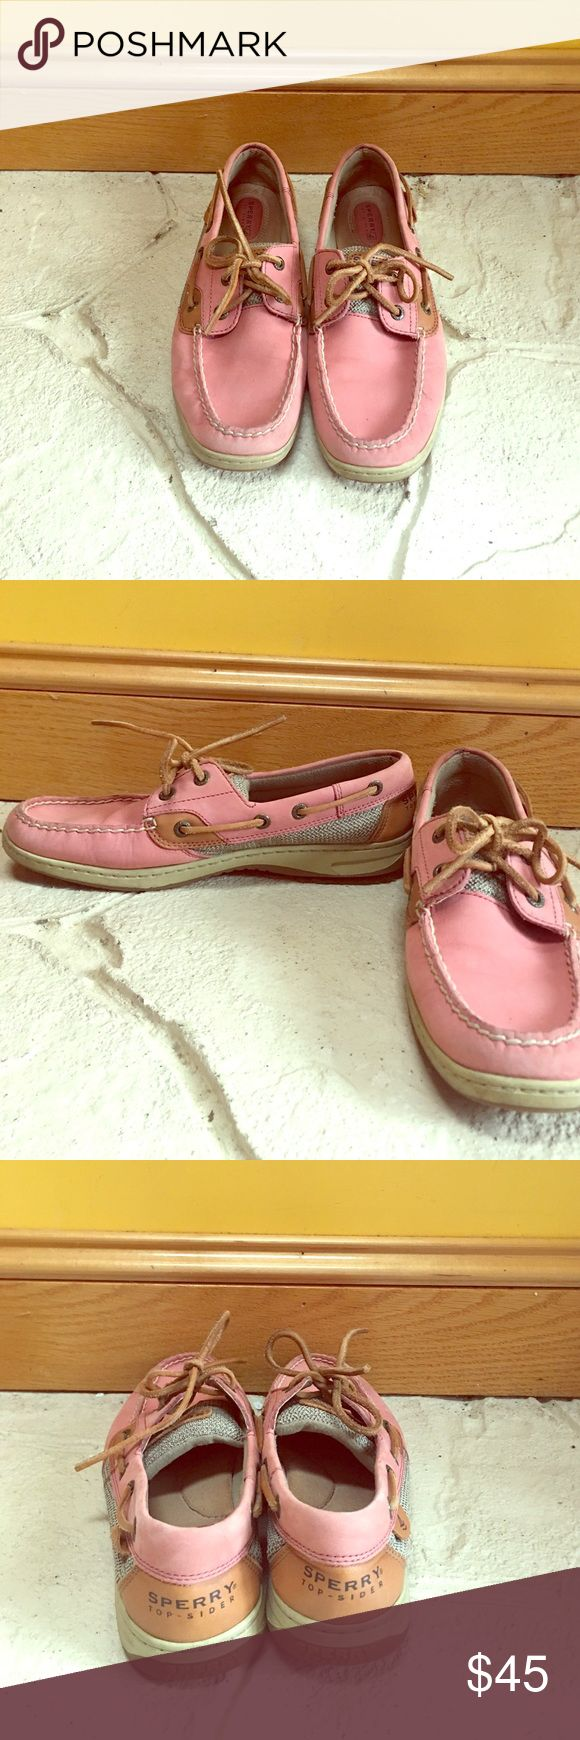 Pink Sperry's Pink boat shoes, size 8.5 women's, super comfortable, only worn a few times! Sperry Top-Sider Shoes Flats & Loafers